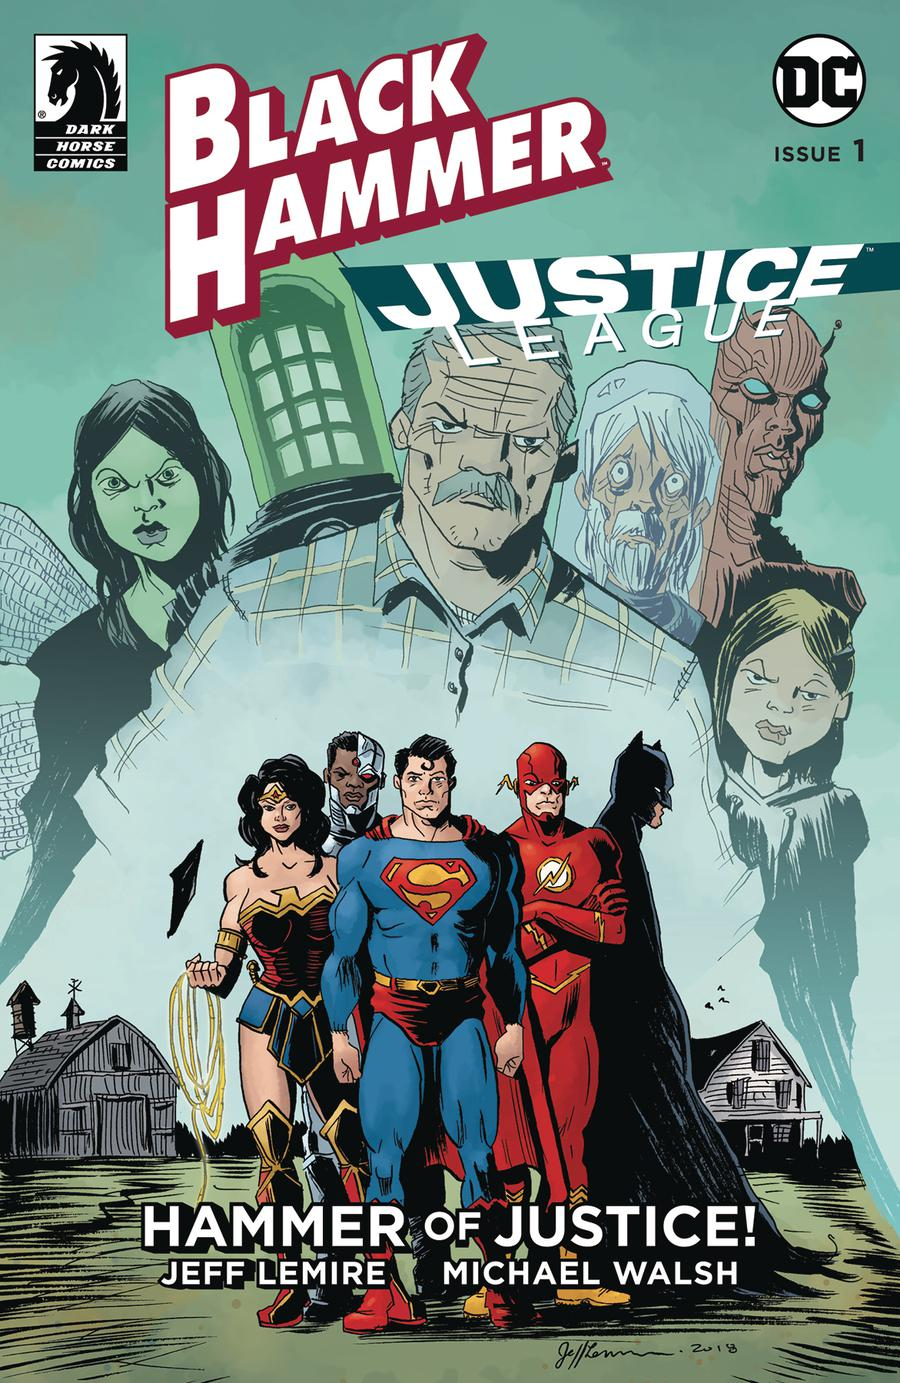 Black Hammer Justice League Hammer Of Justice #1 Cover D Variant Jeff Lemire Cover